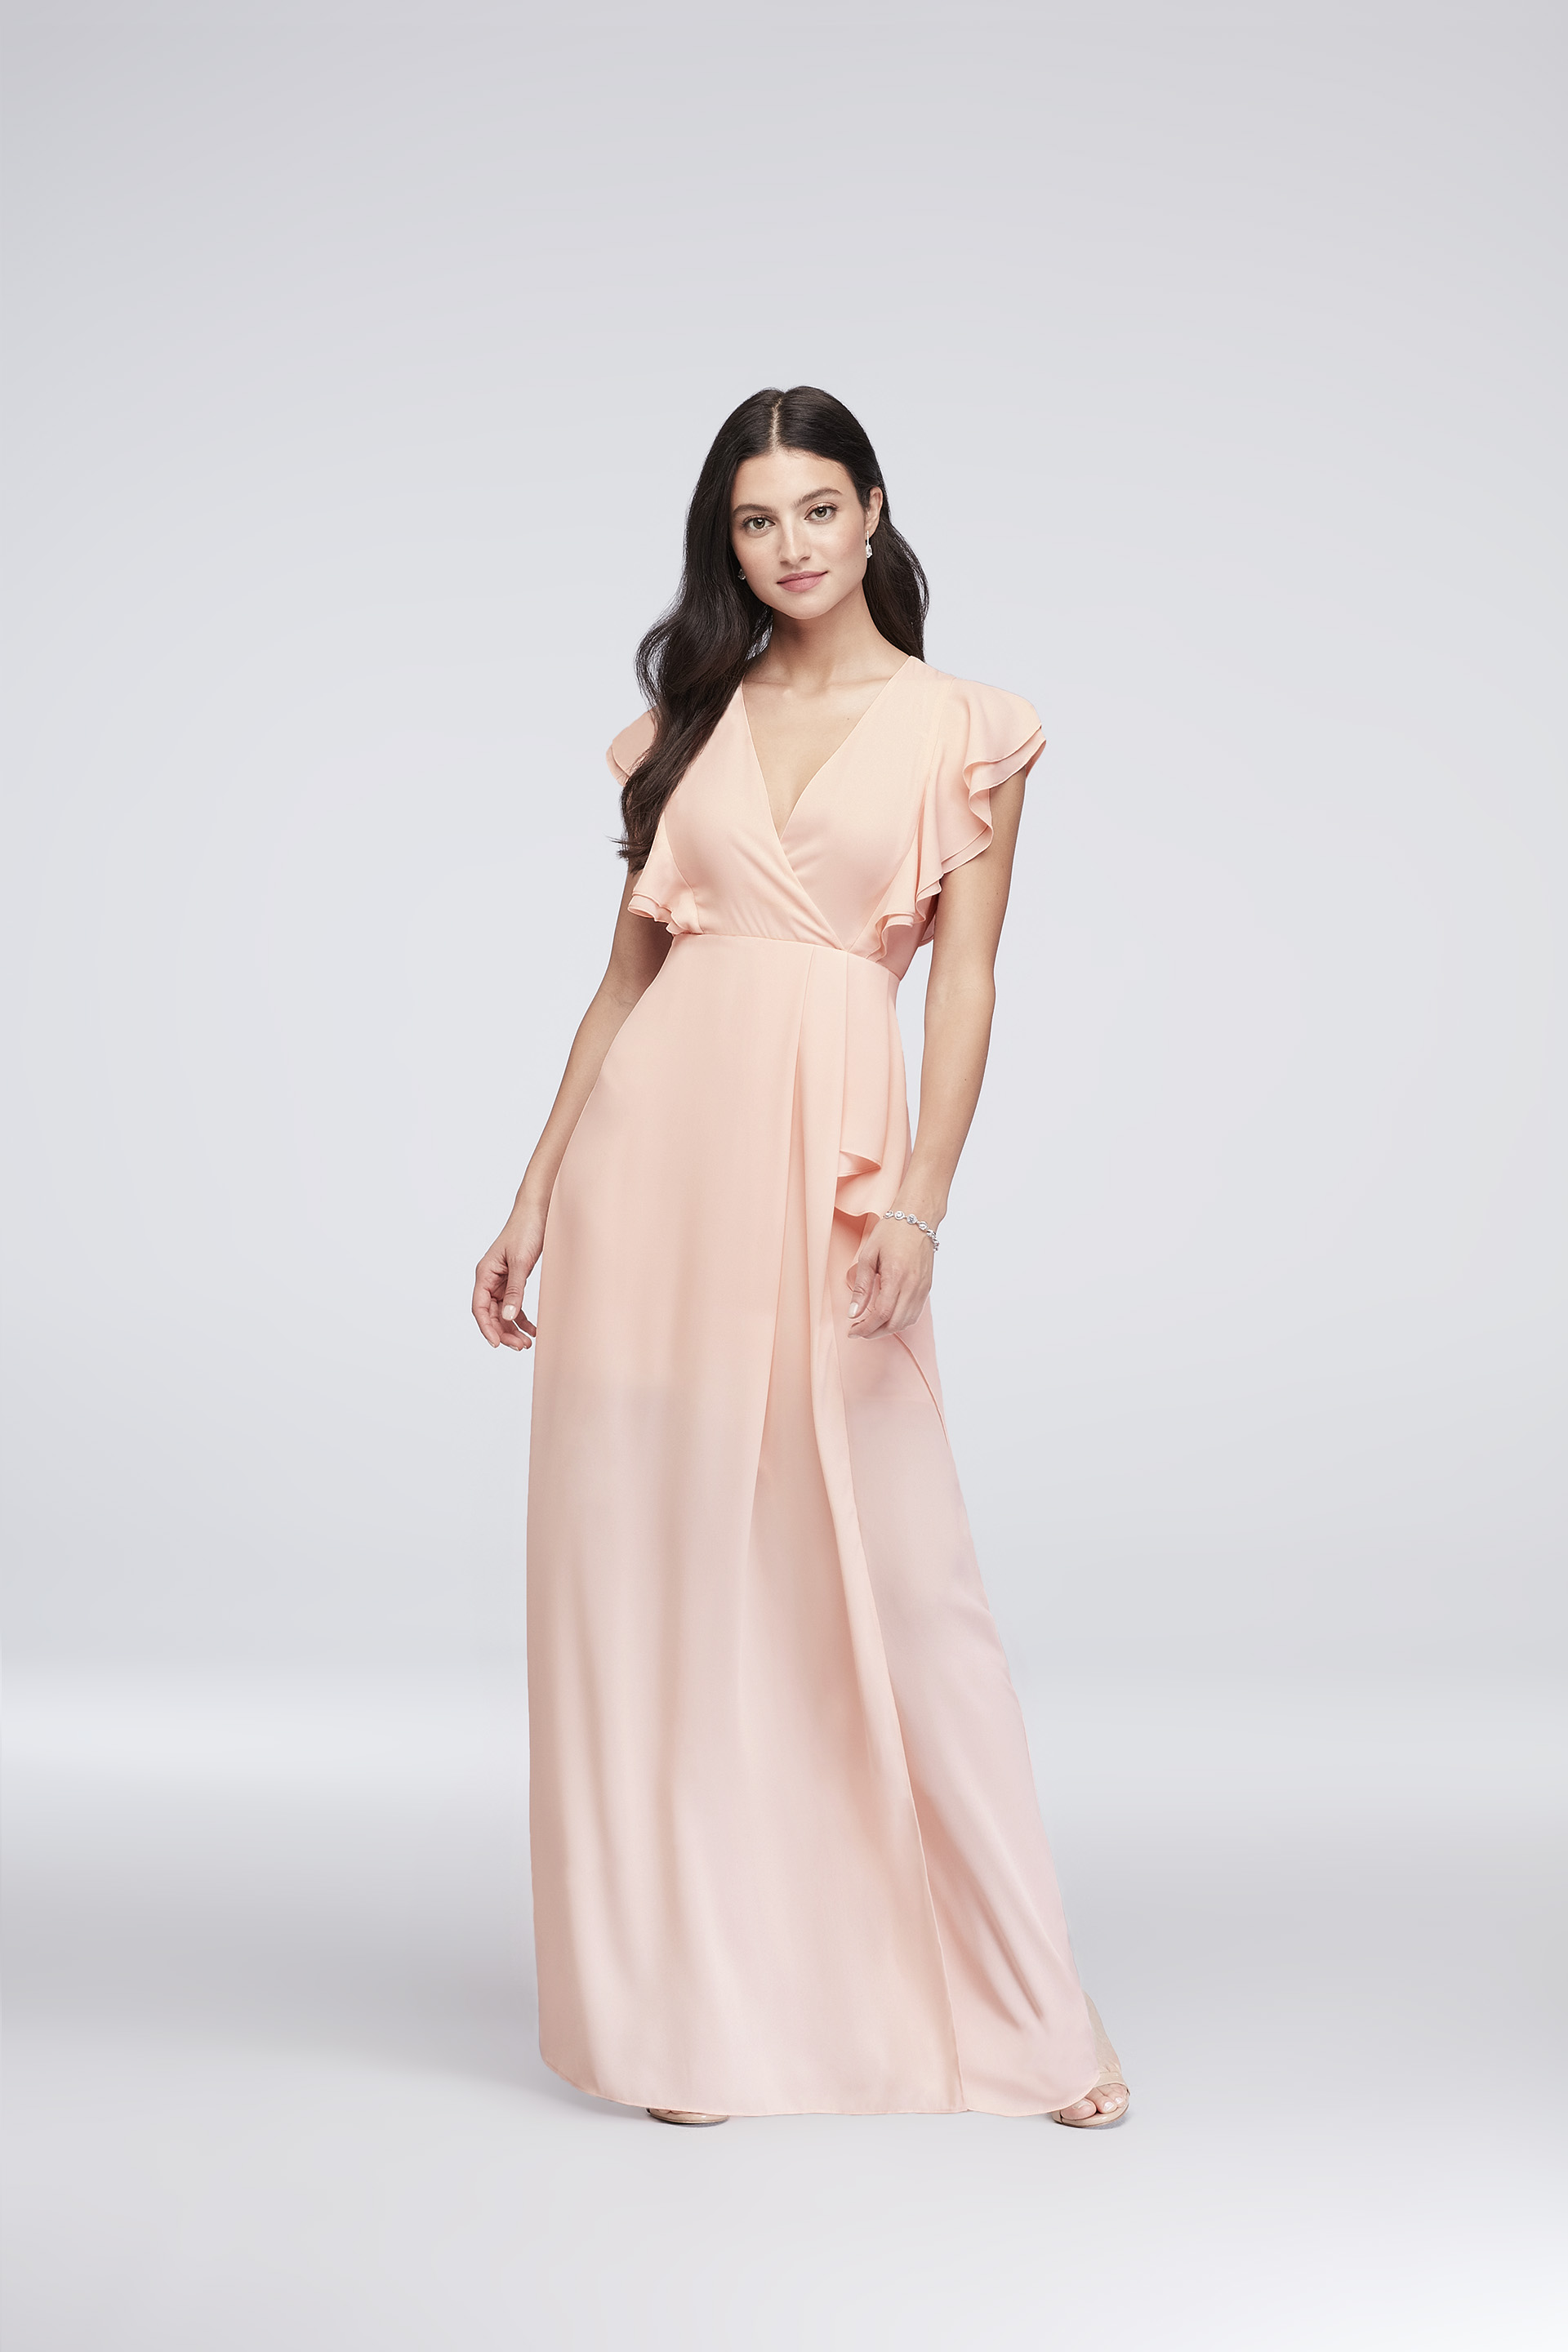 Reverie for David's Bridal bridesmaid dresses. (Credit: David's Bridal)